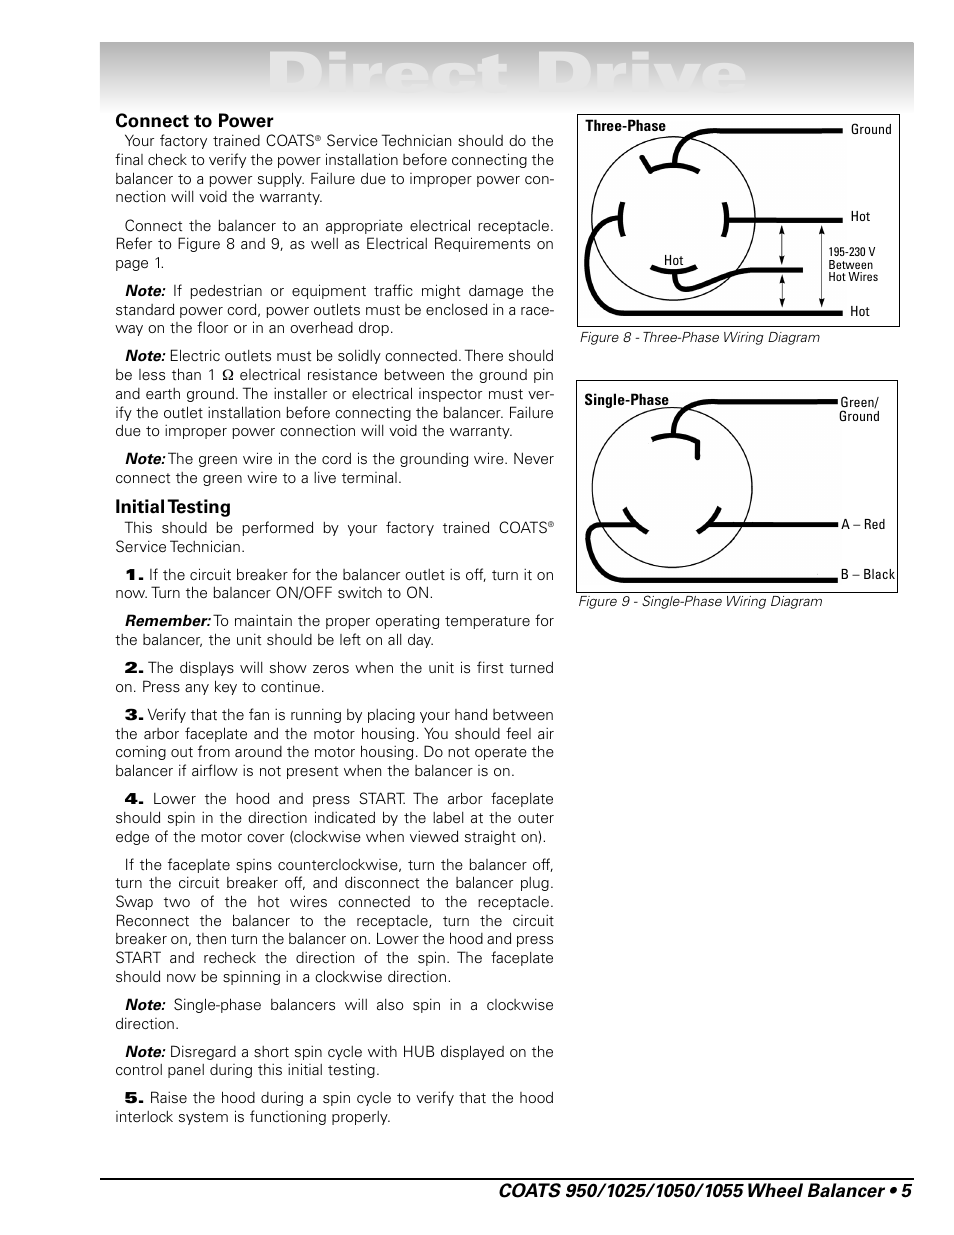 coats 1055 balancer page11 direct drive coats 1055 balancer user manual page 11 24 john deere 1050 wiring diagram at panicattacktreatment.co